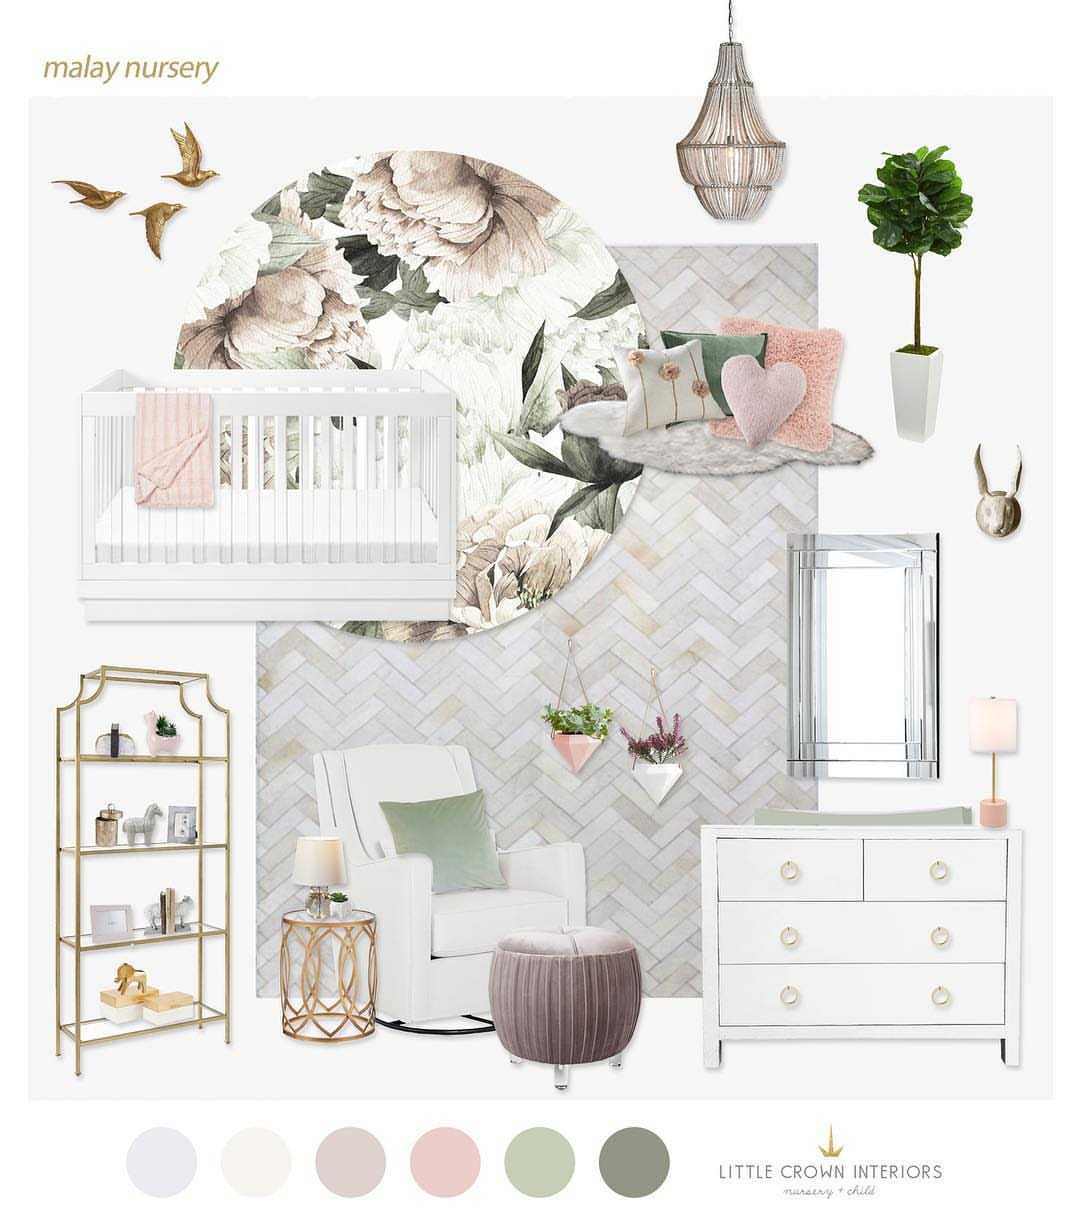 Jessi Malay's Nursery designed by Little Crown Interiors